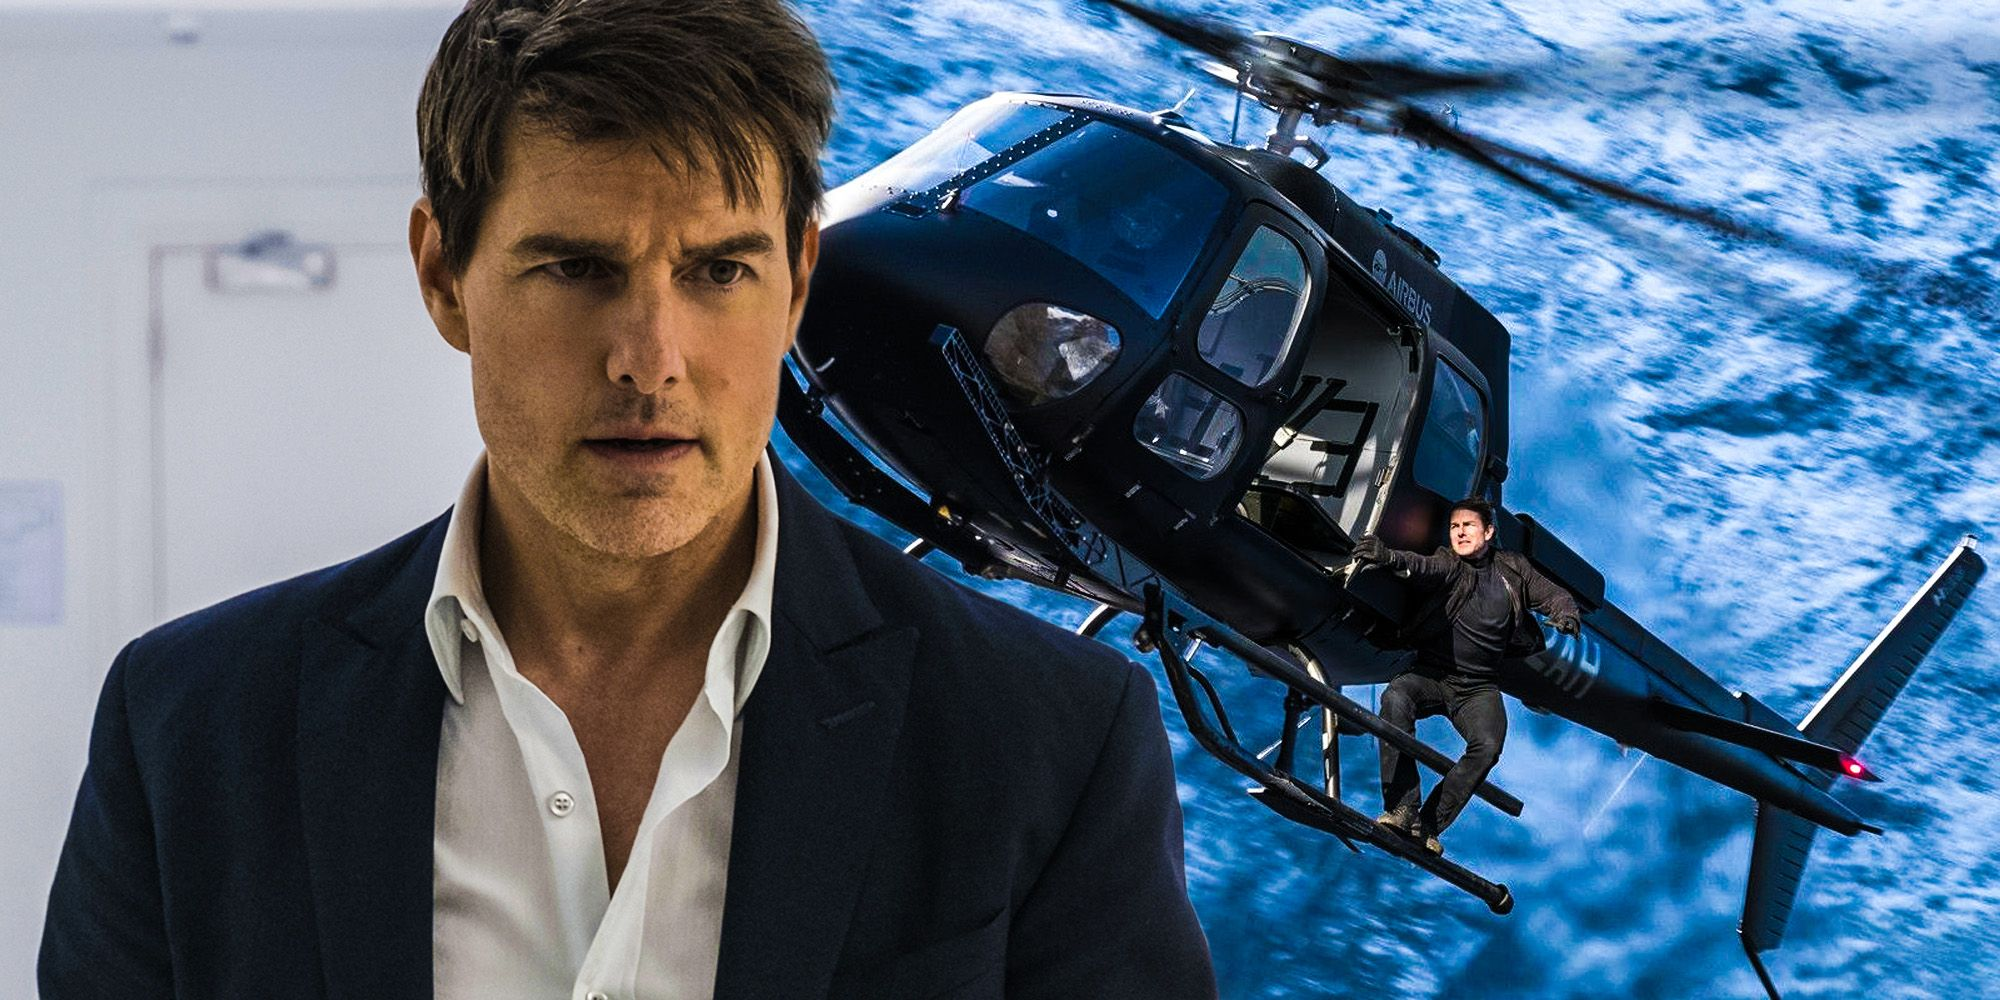 Mission Impossible: How Tom Cruise Pulled Off Fallout's Helicopter Chase Stunt